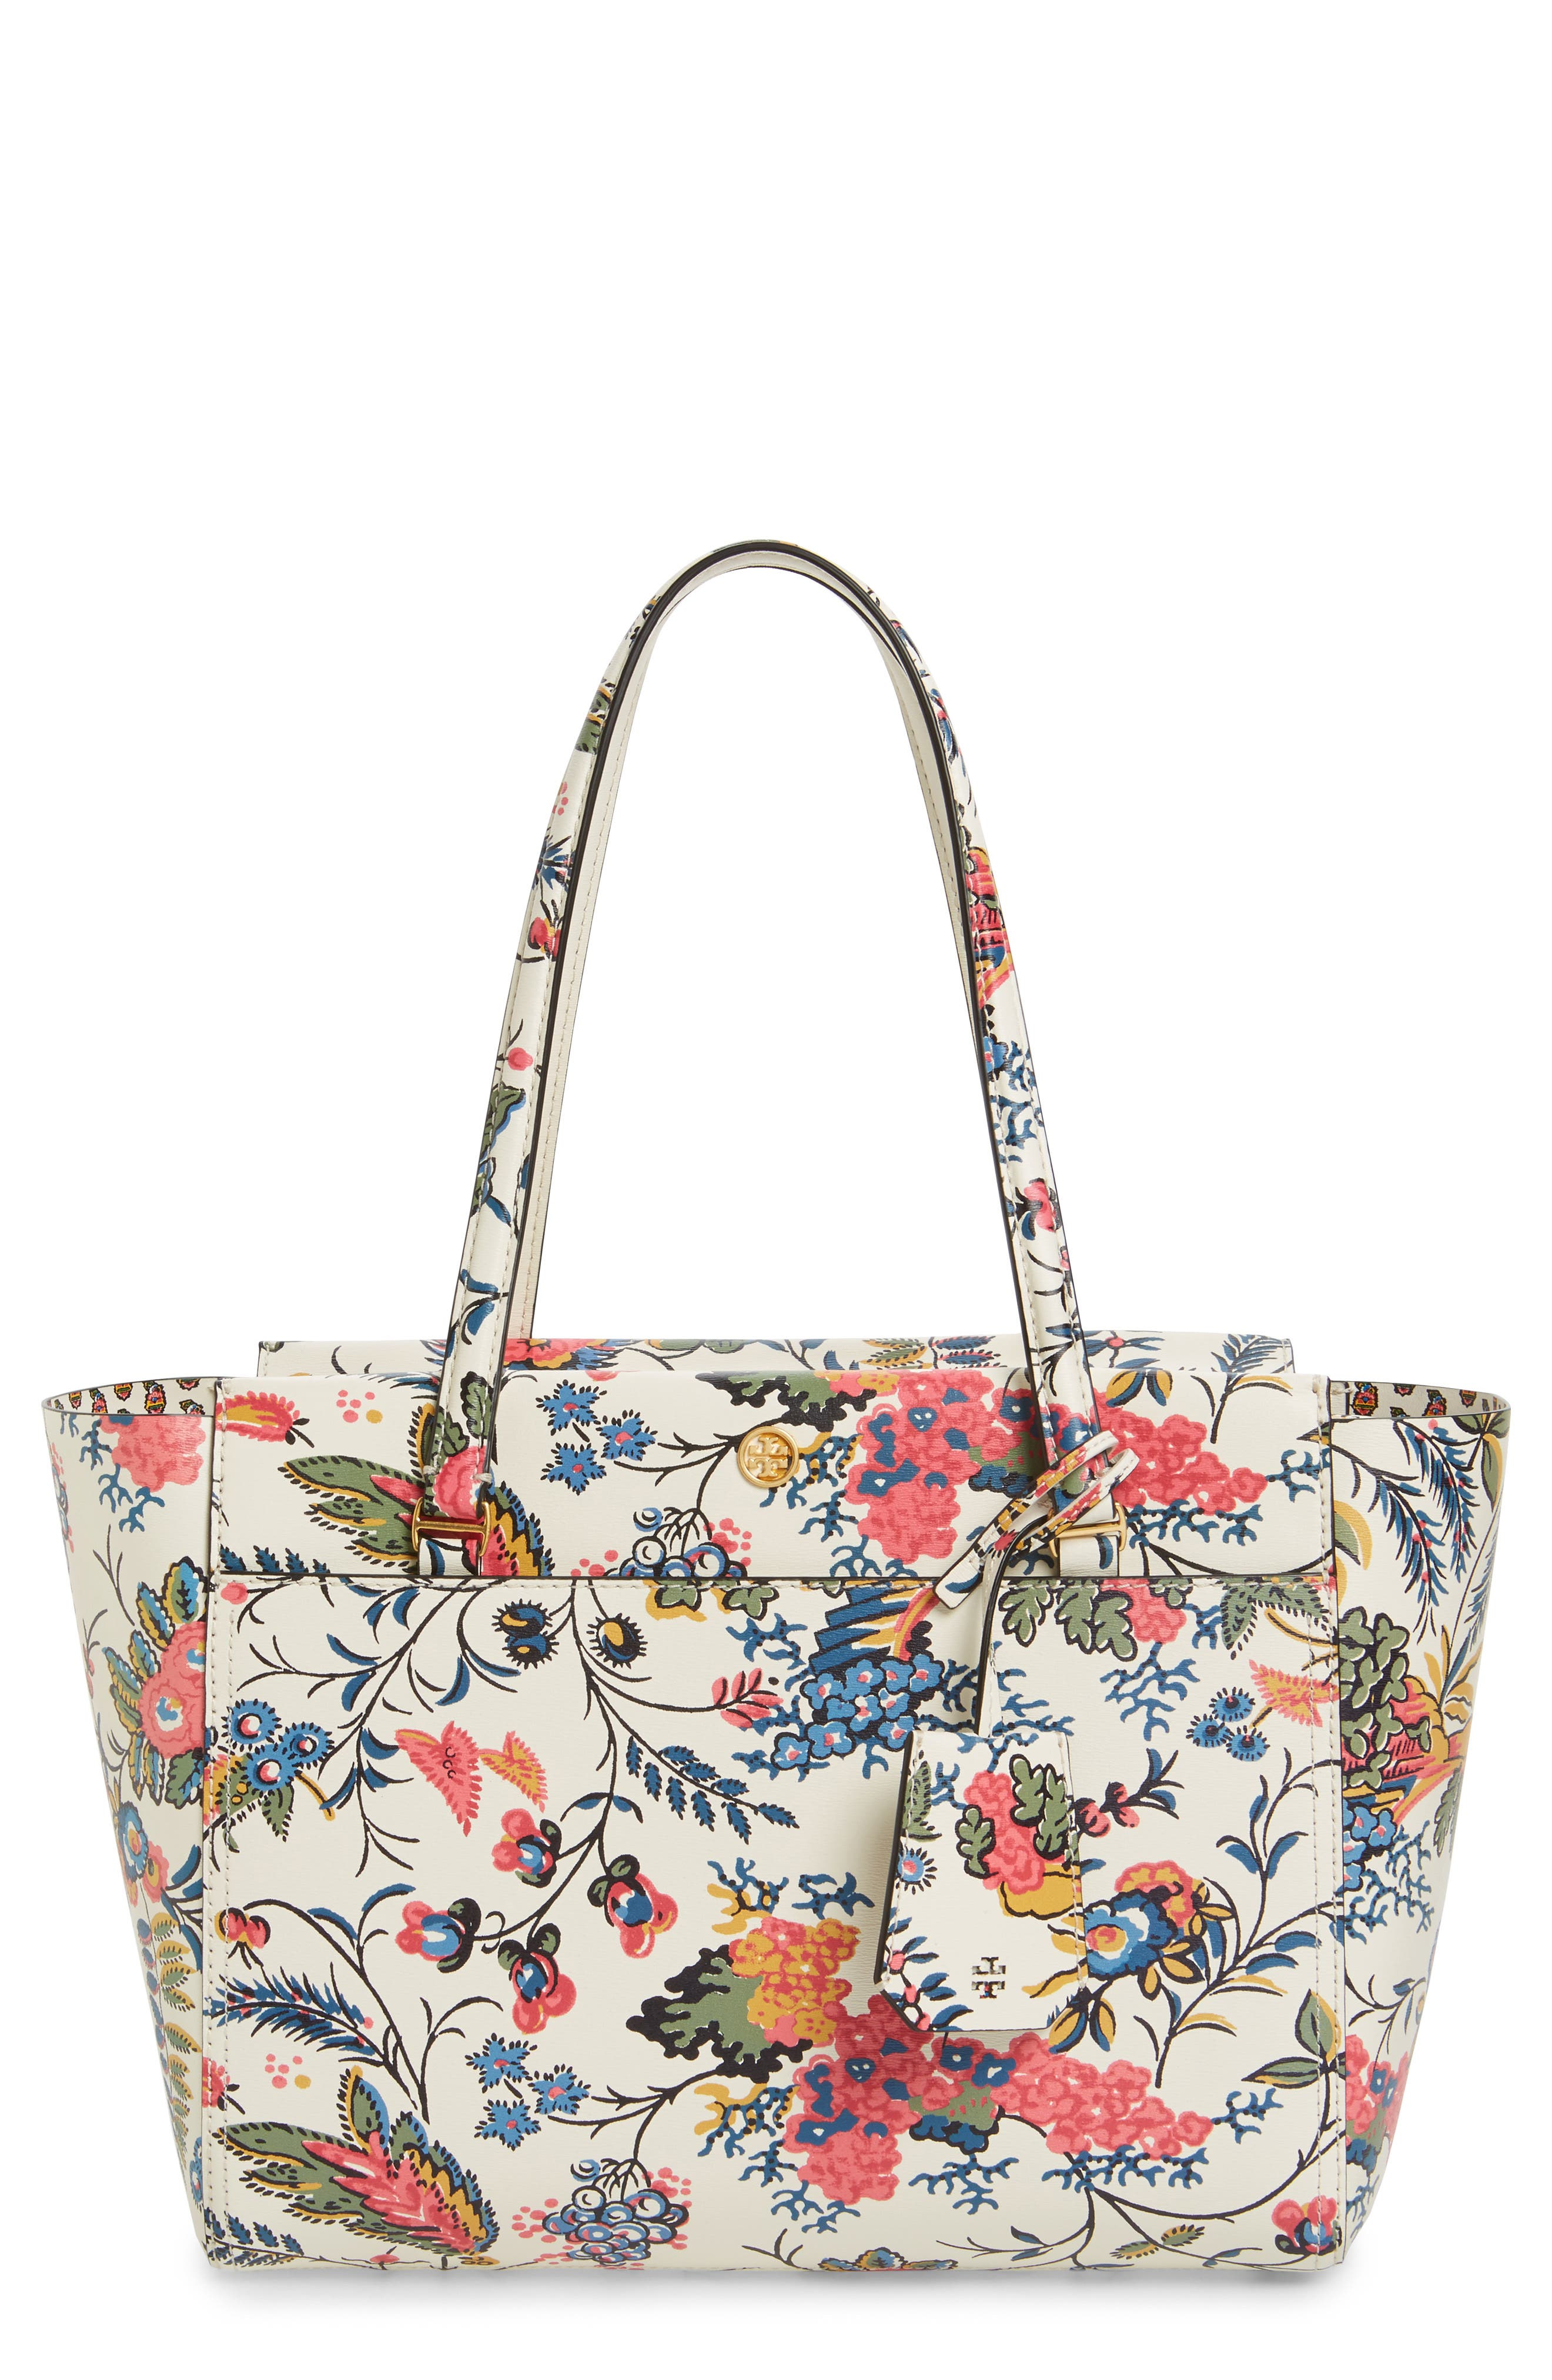 Tory Burch Small Parker Floral Leather Tote